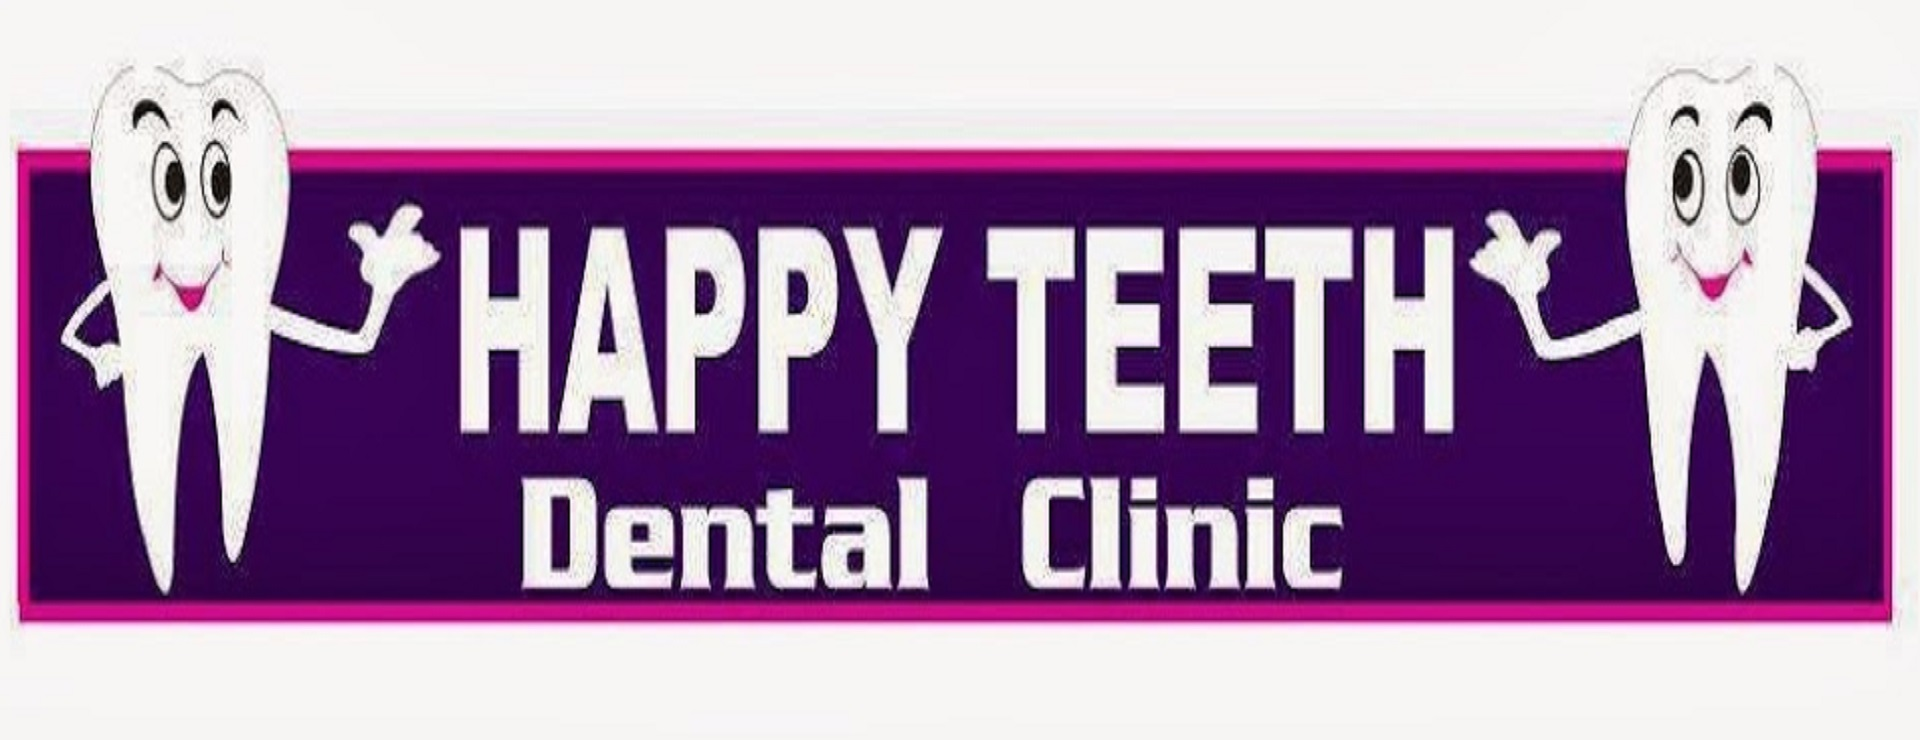 Happy teeth clinic front